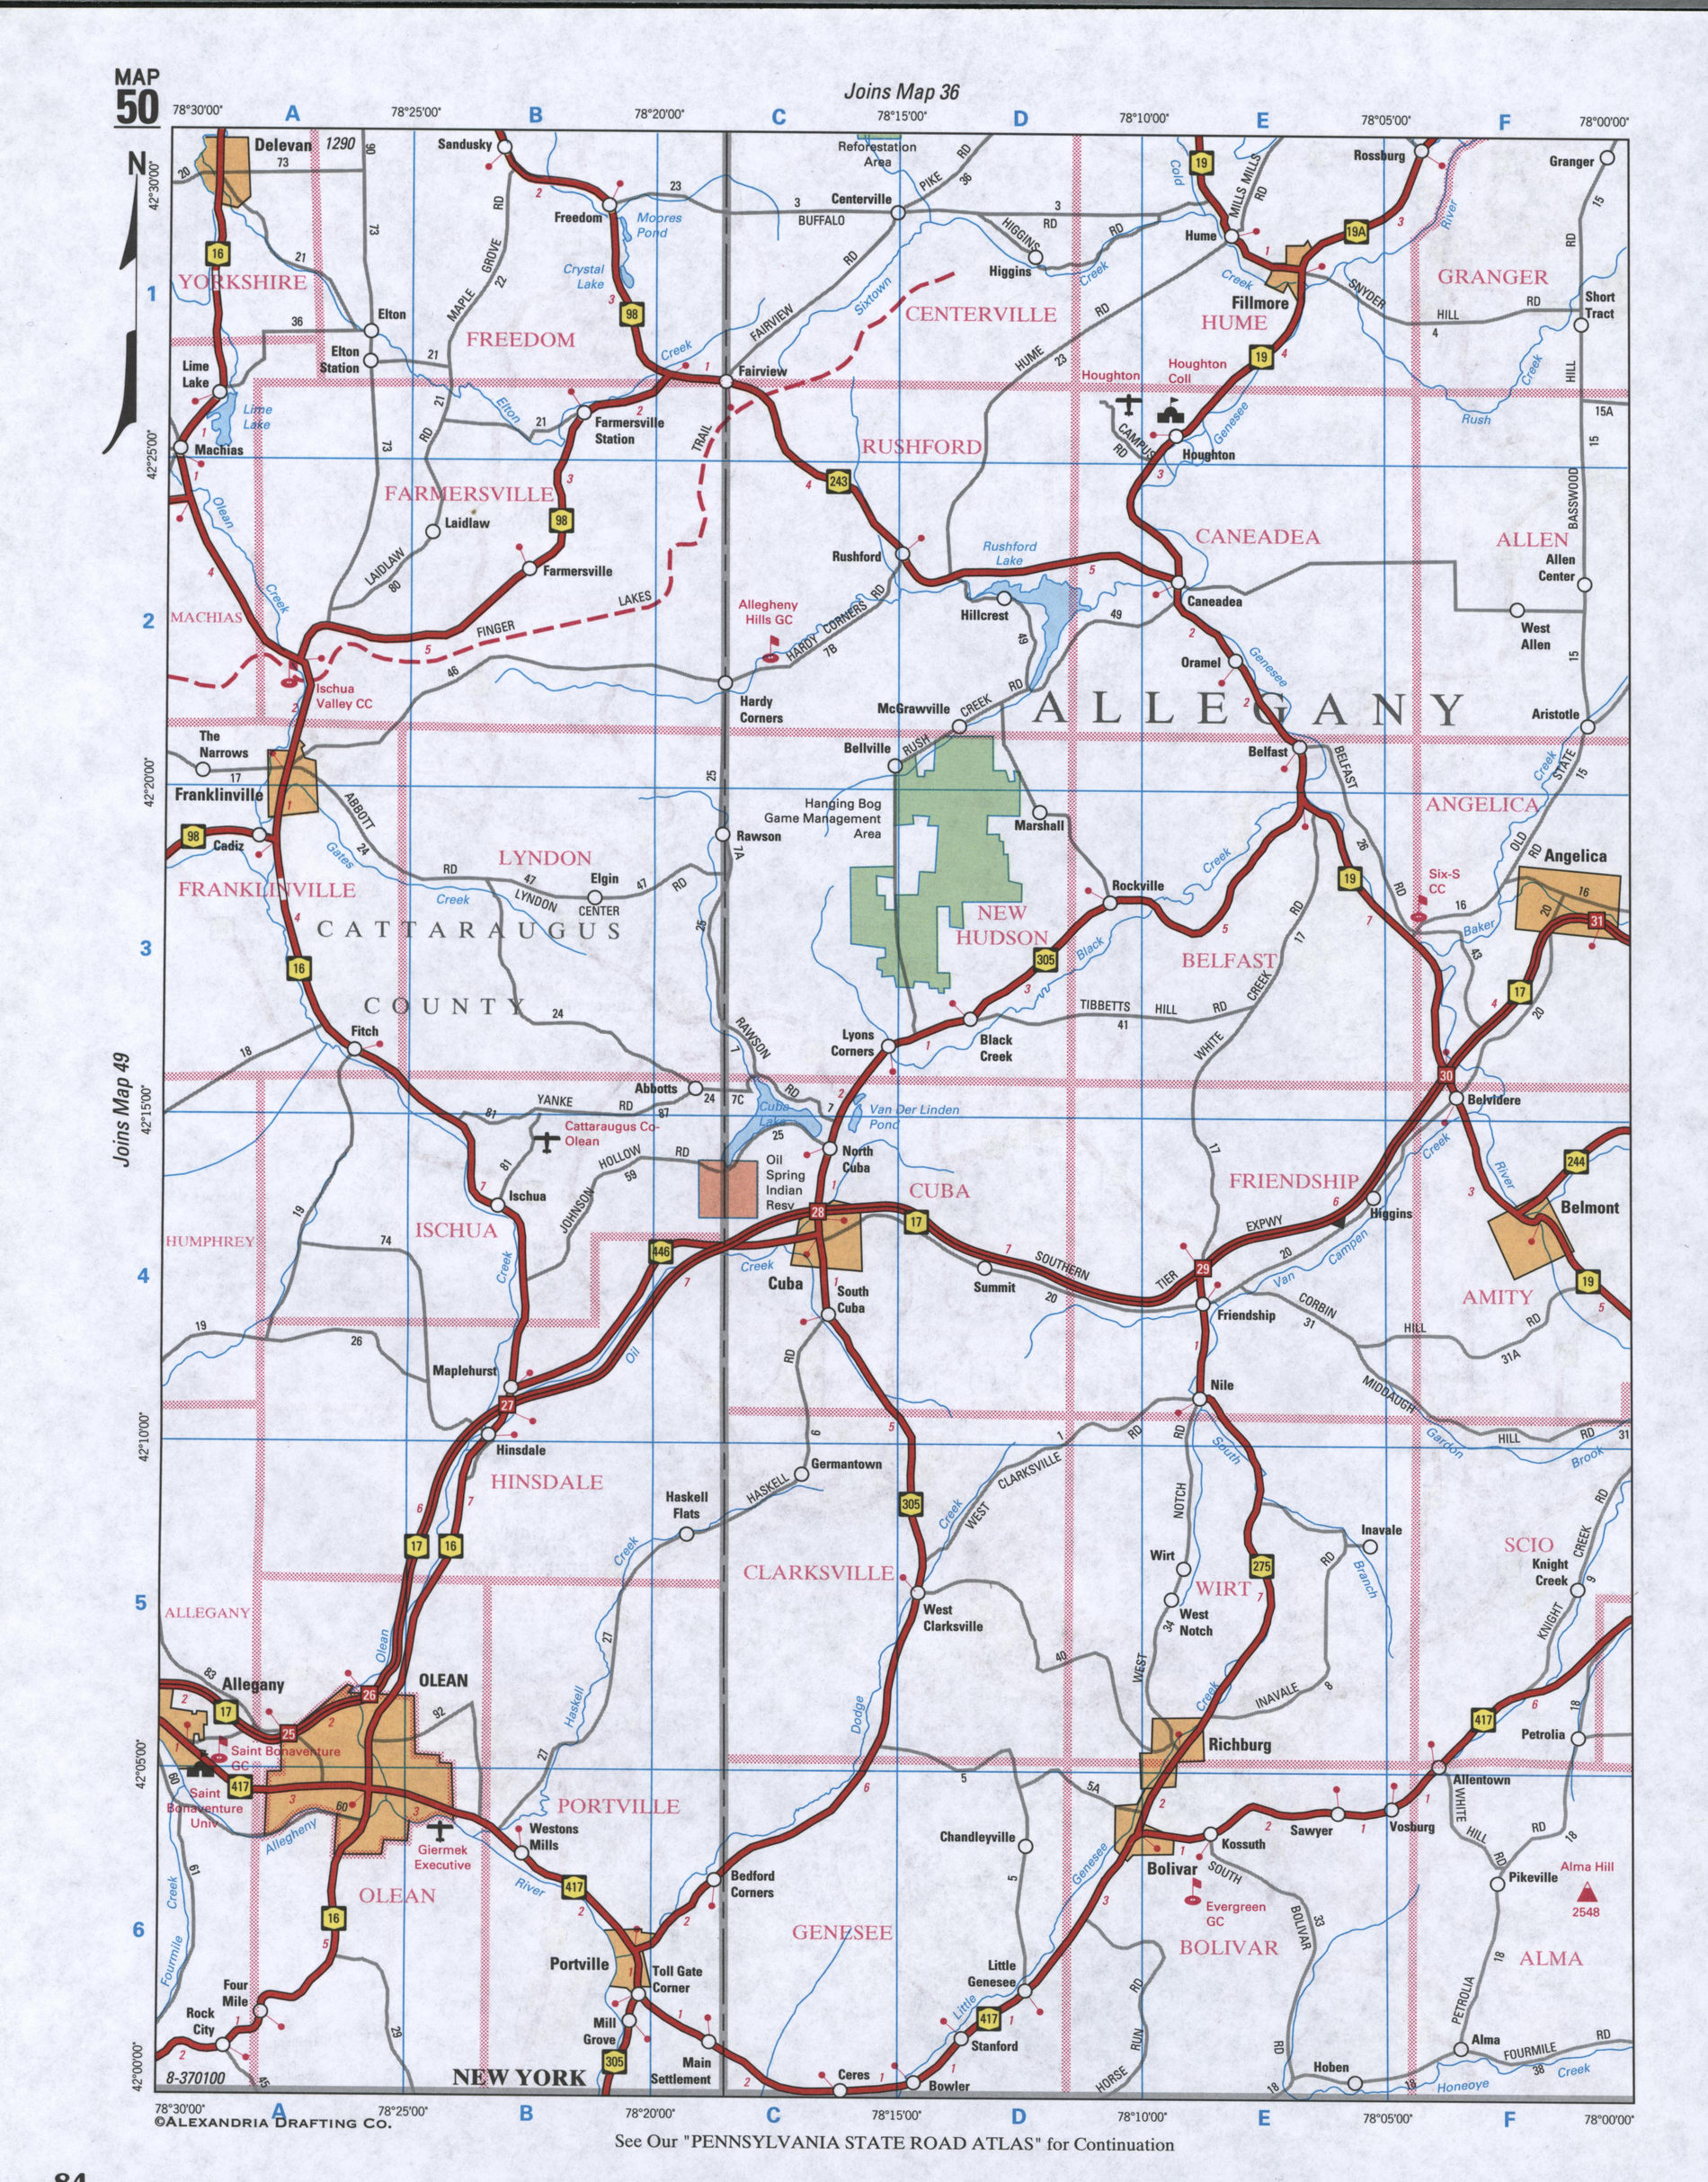 Map of Allegany County, New York state